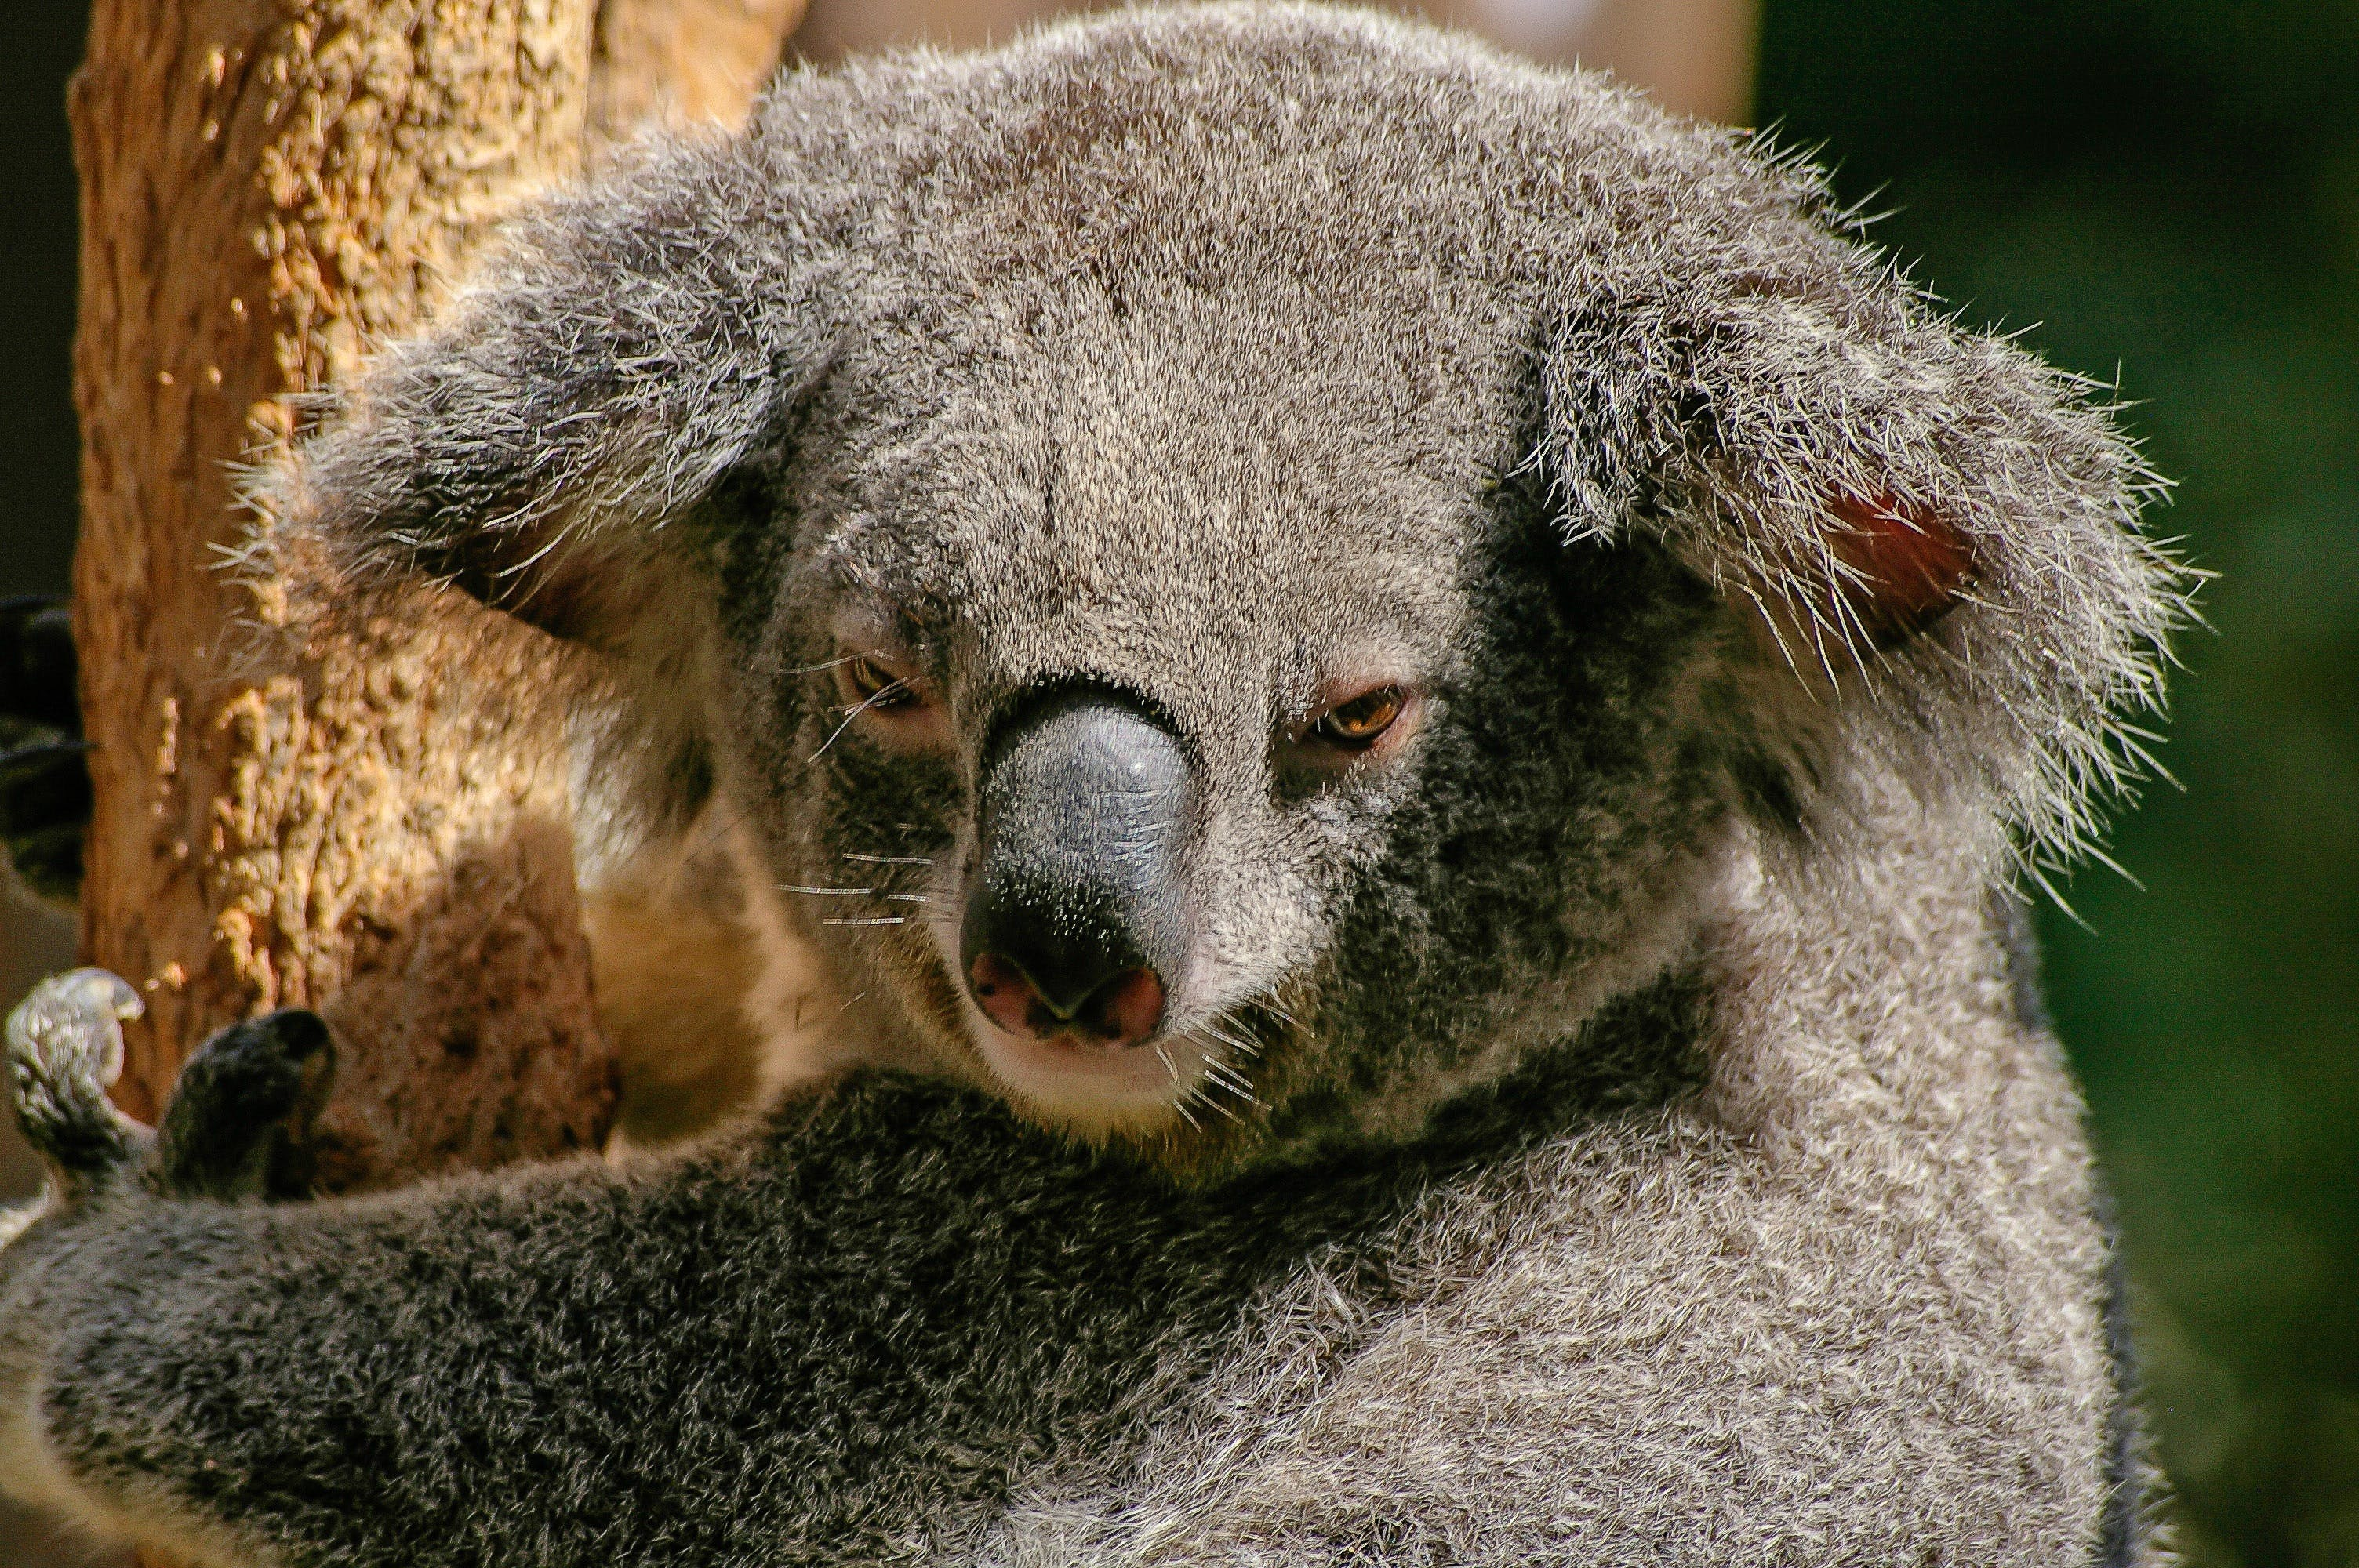 Koala Bear on Tree during Daytime